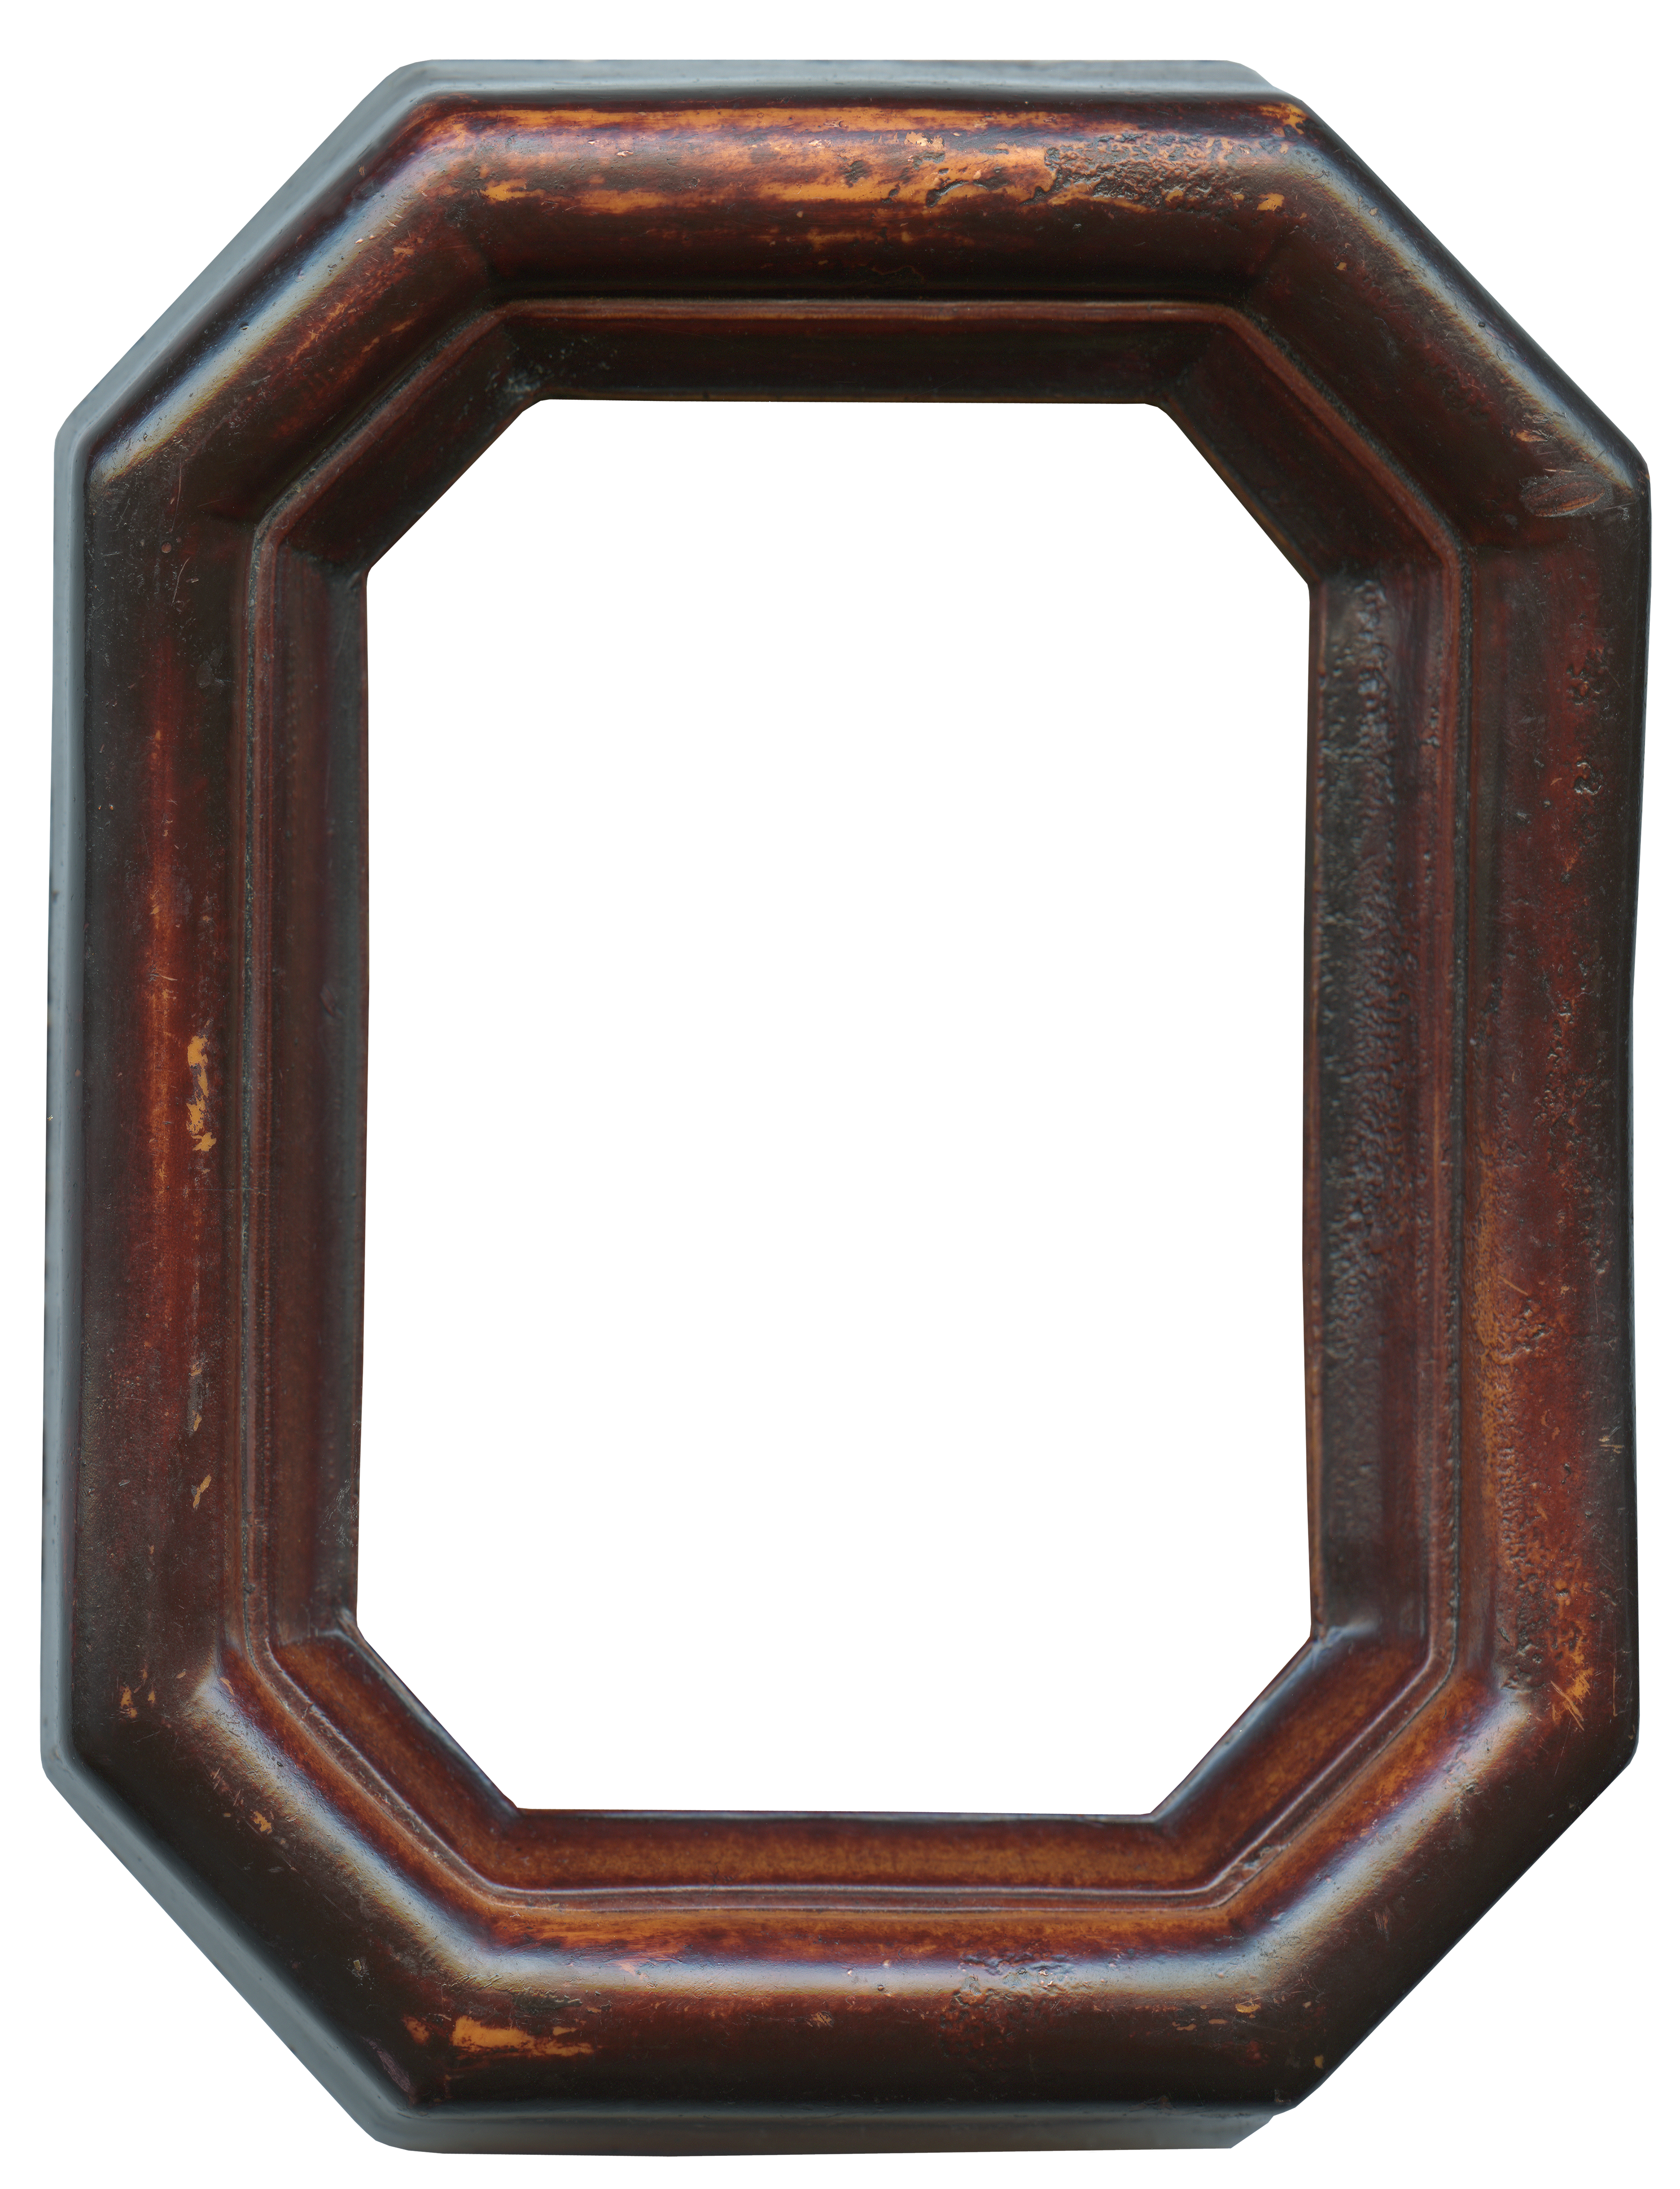 Dark wood frame png. Brown wooden oval picture